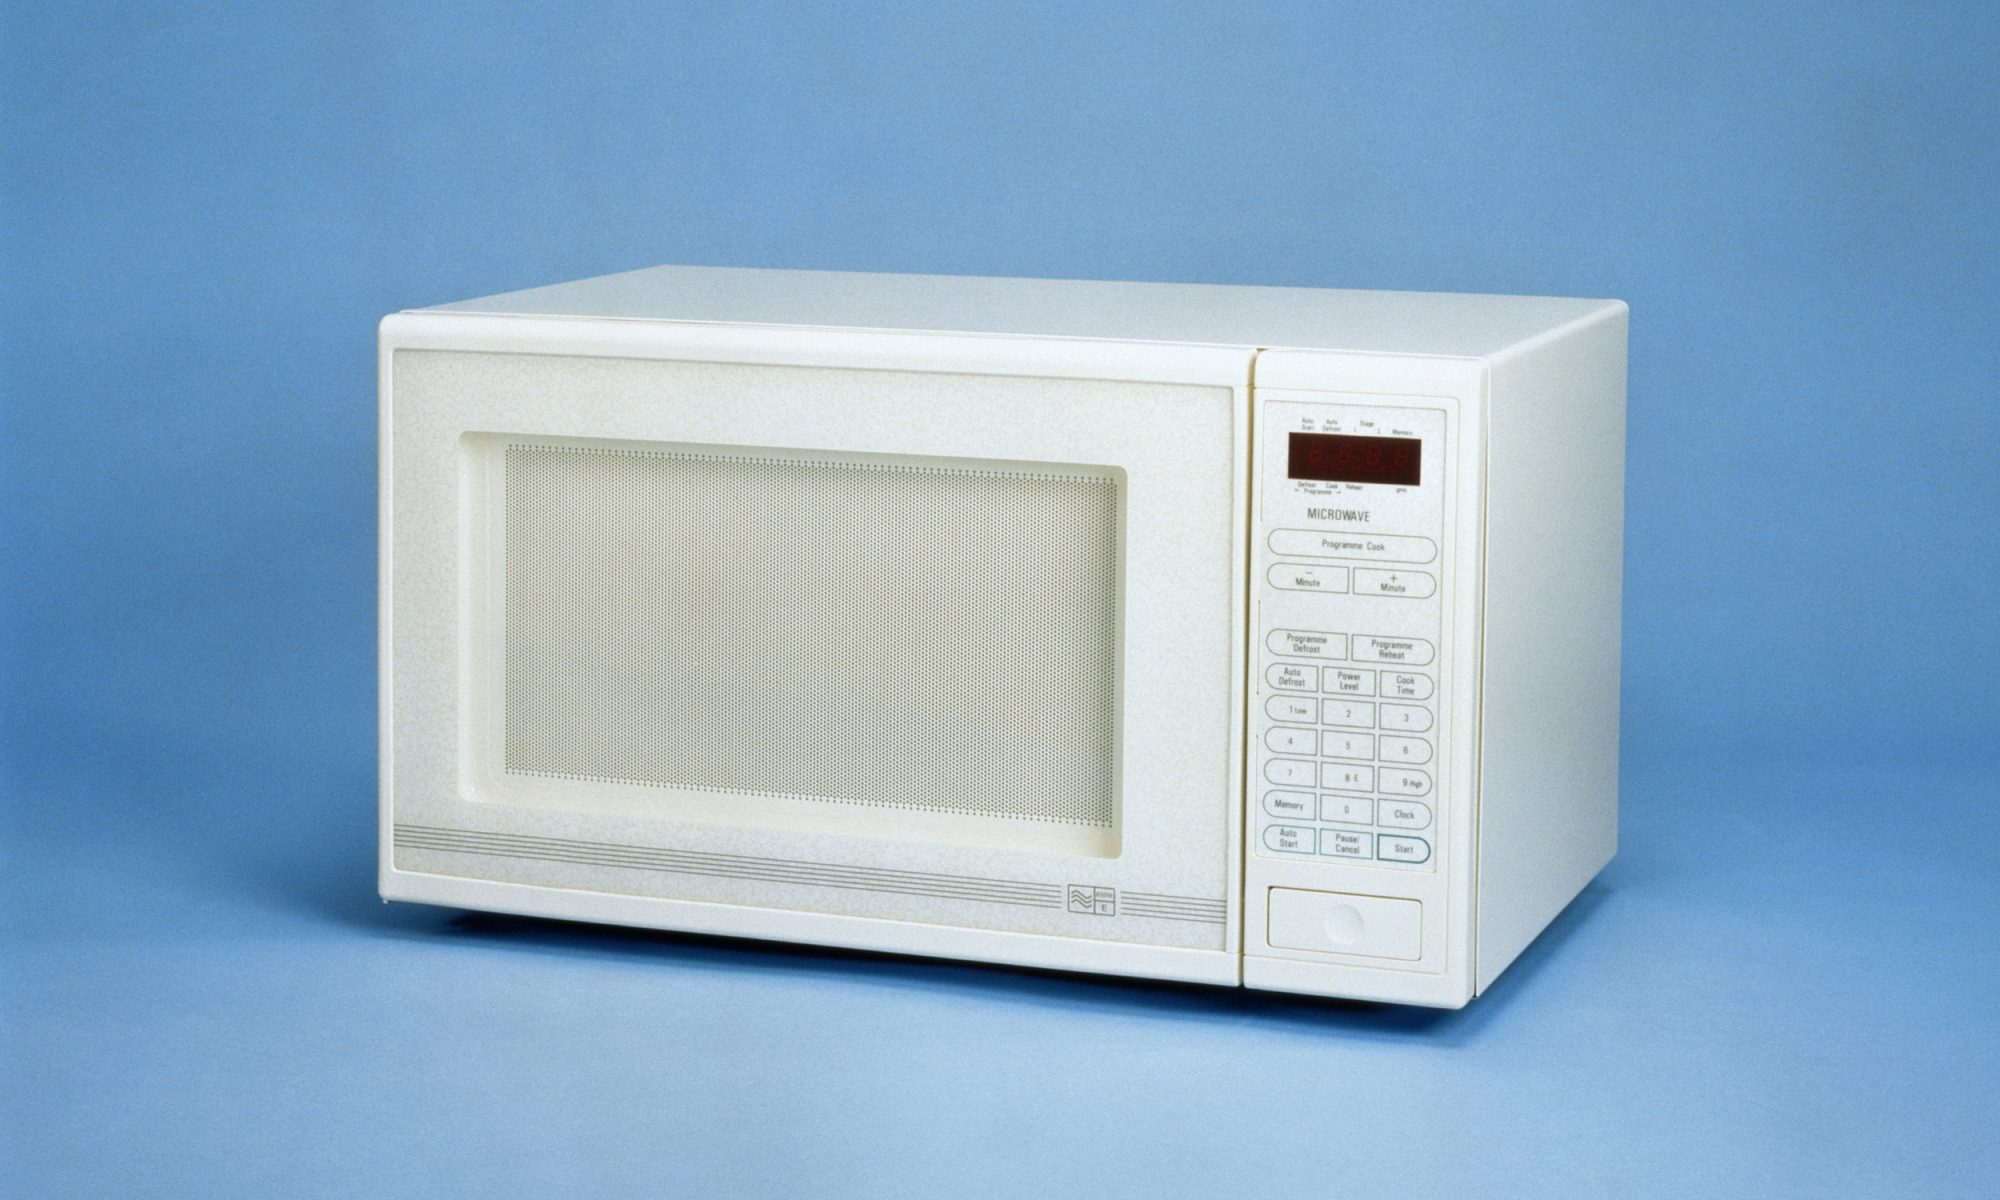 EC: How to Cook Eggs in the Microwave